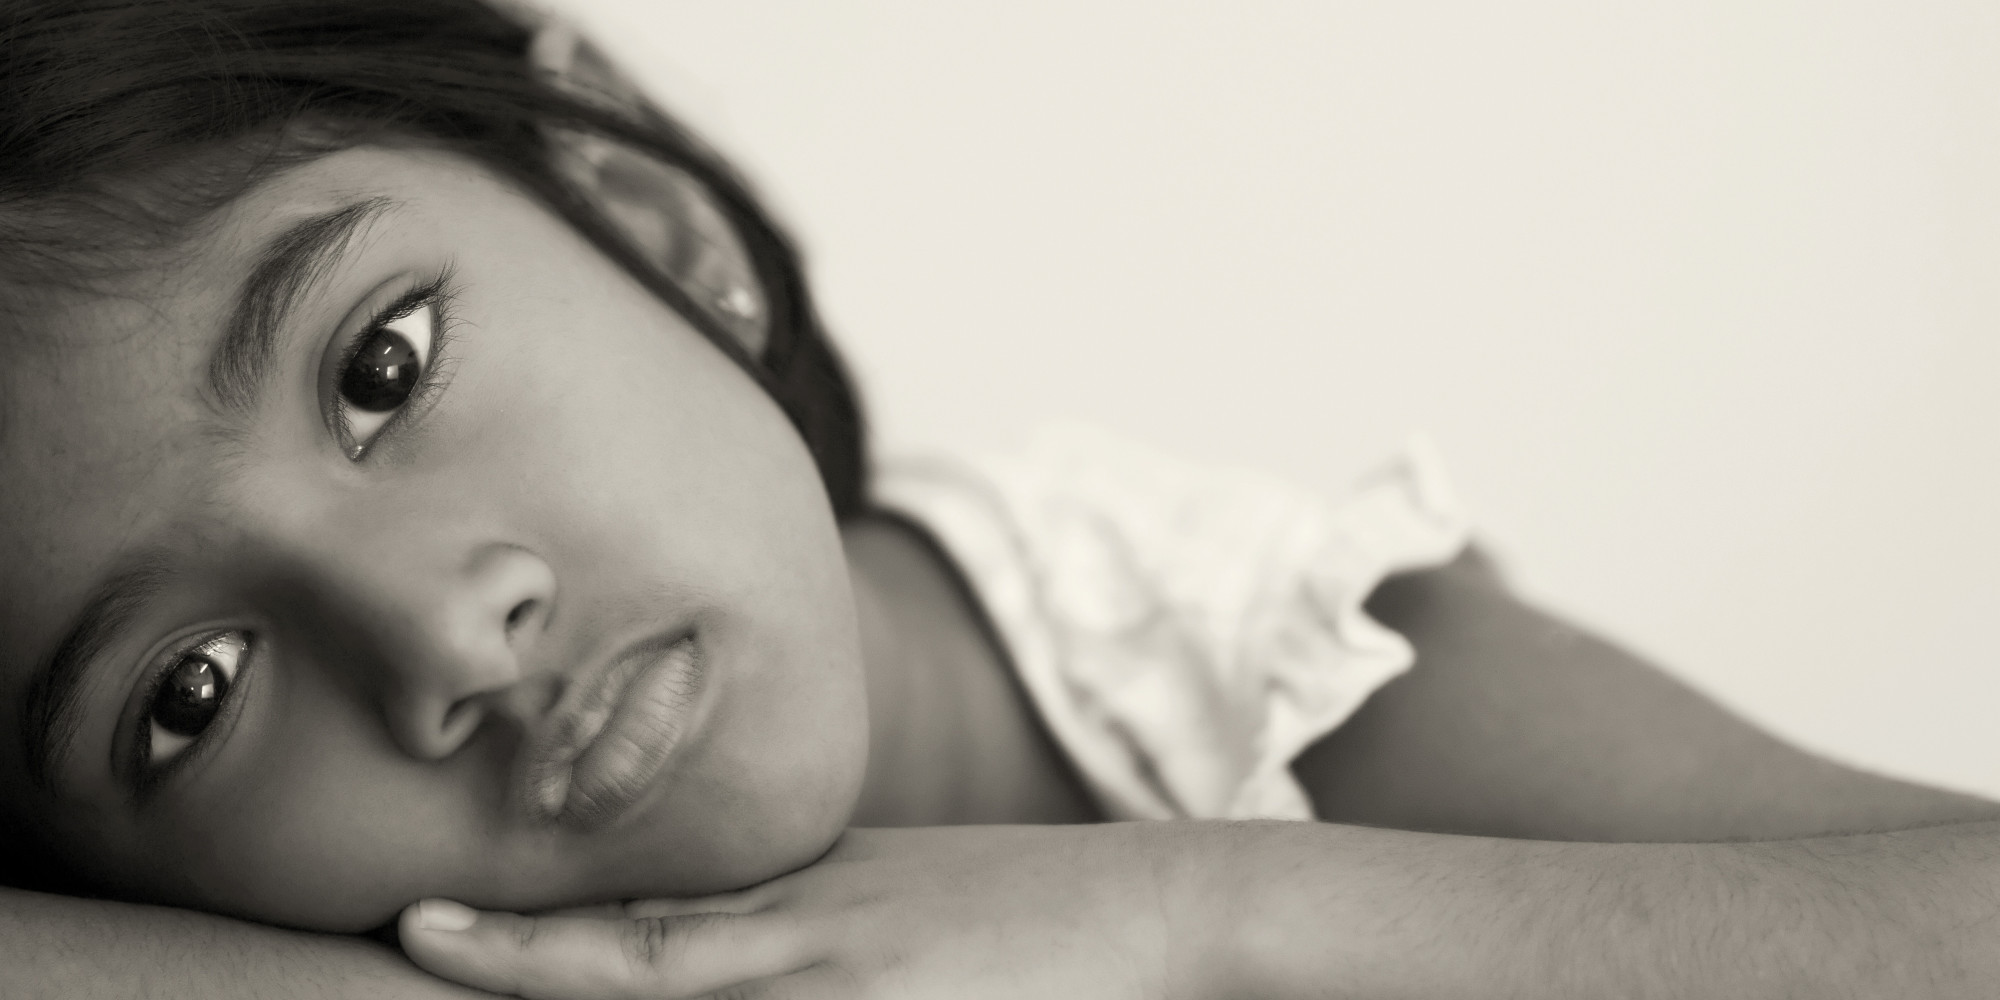 study shows childhood depression has link to mothers Perinatal depression has been linked to negative child development outcomes in past studies this is the first large-scale study of a maternal depression intervention from a low- or middle-income country to provide additional evidence of this connection the treatment didn't improve the children's.